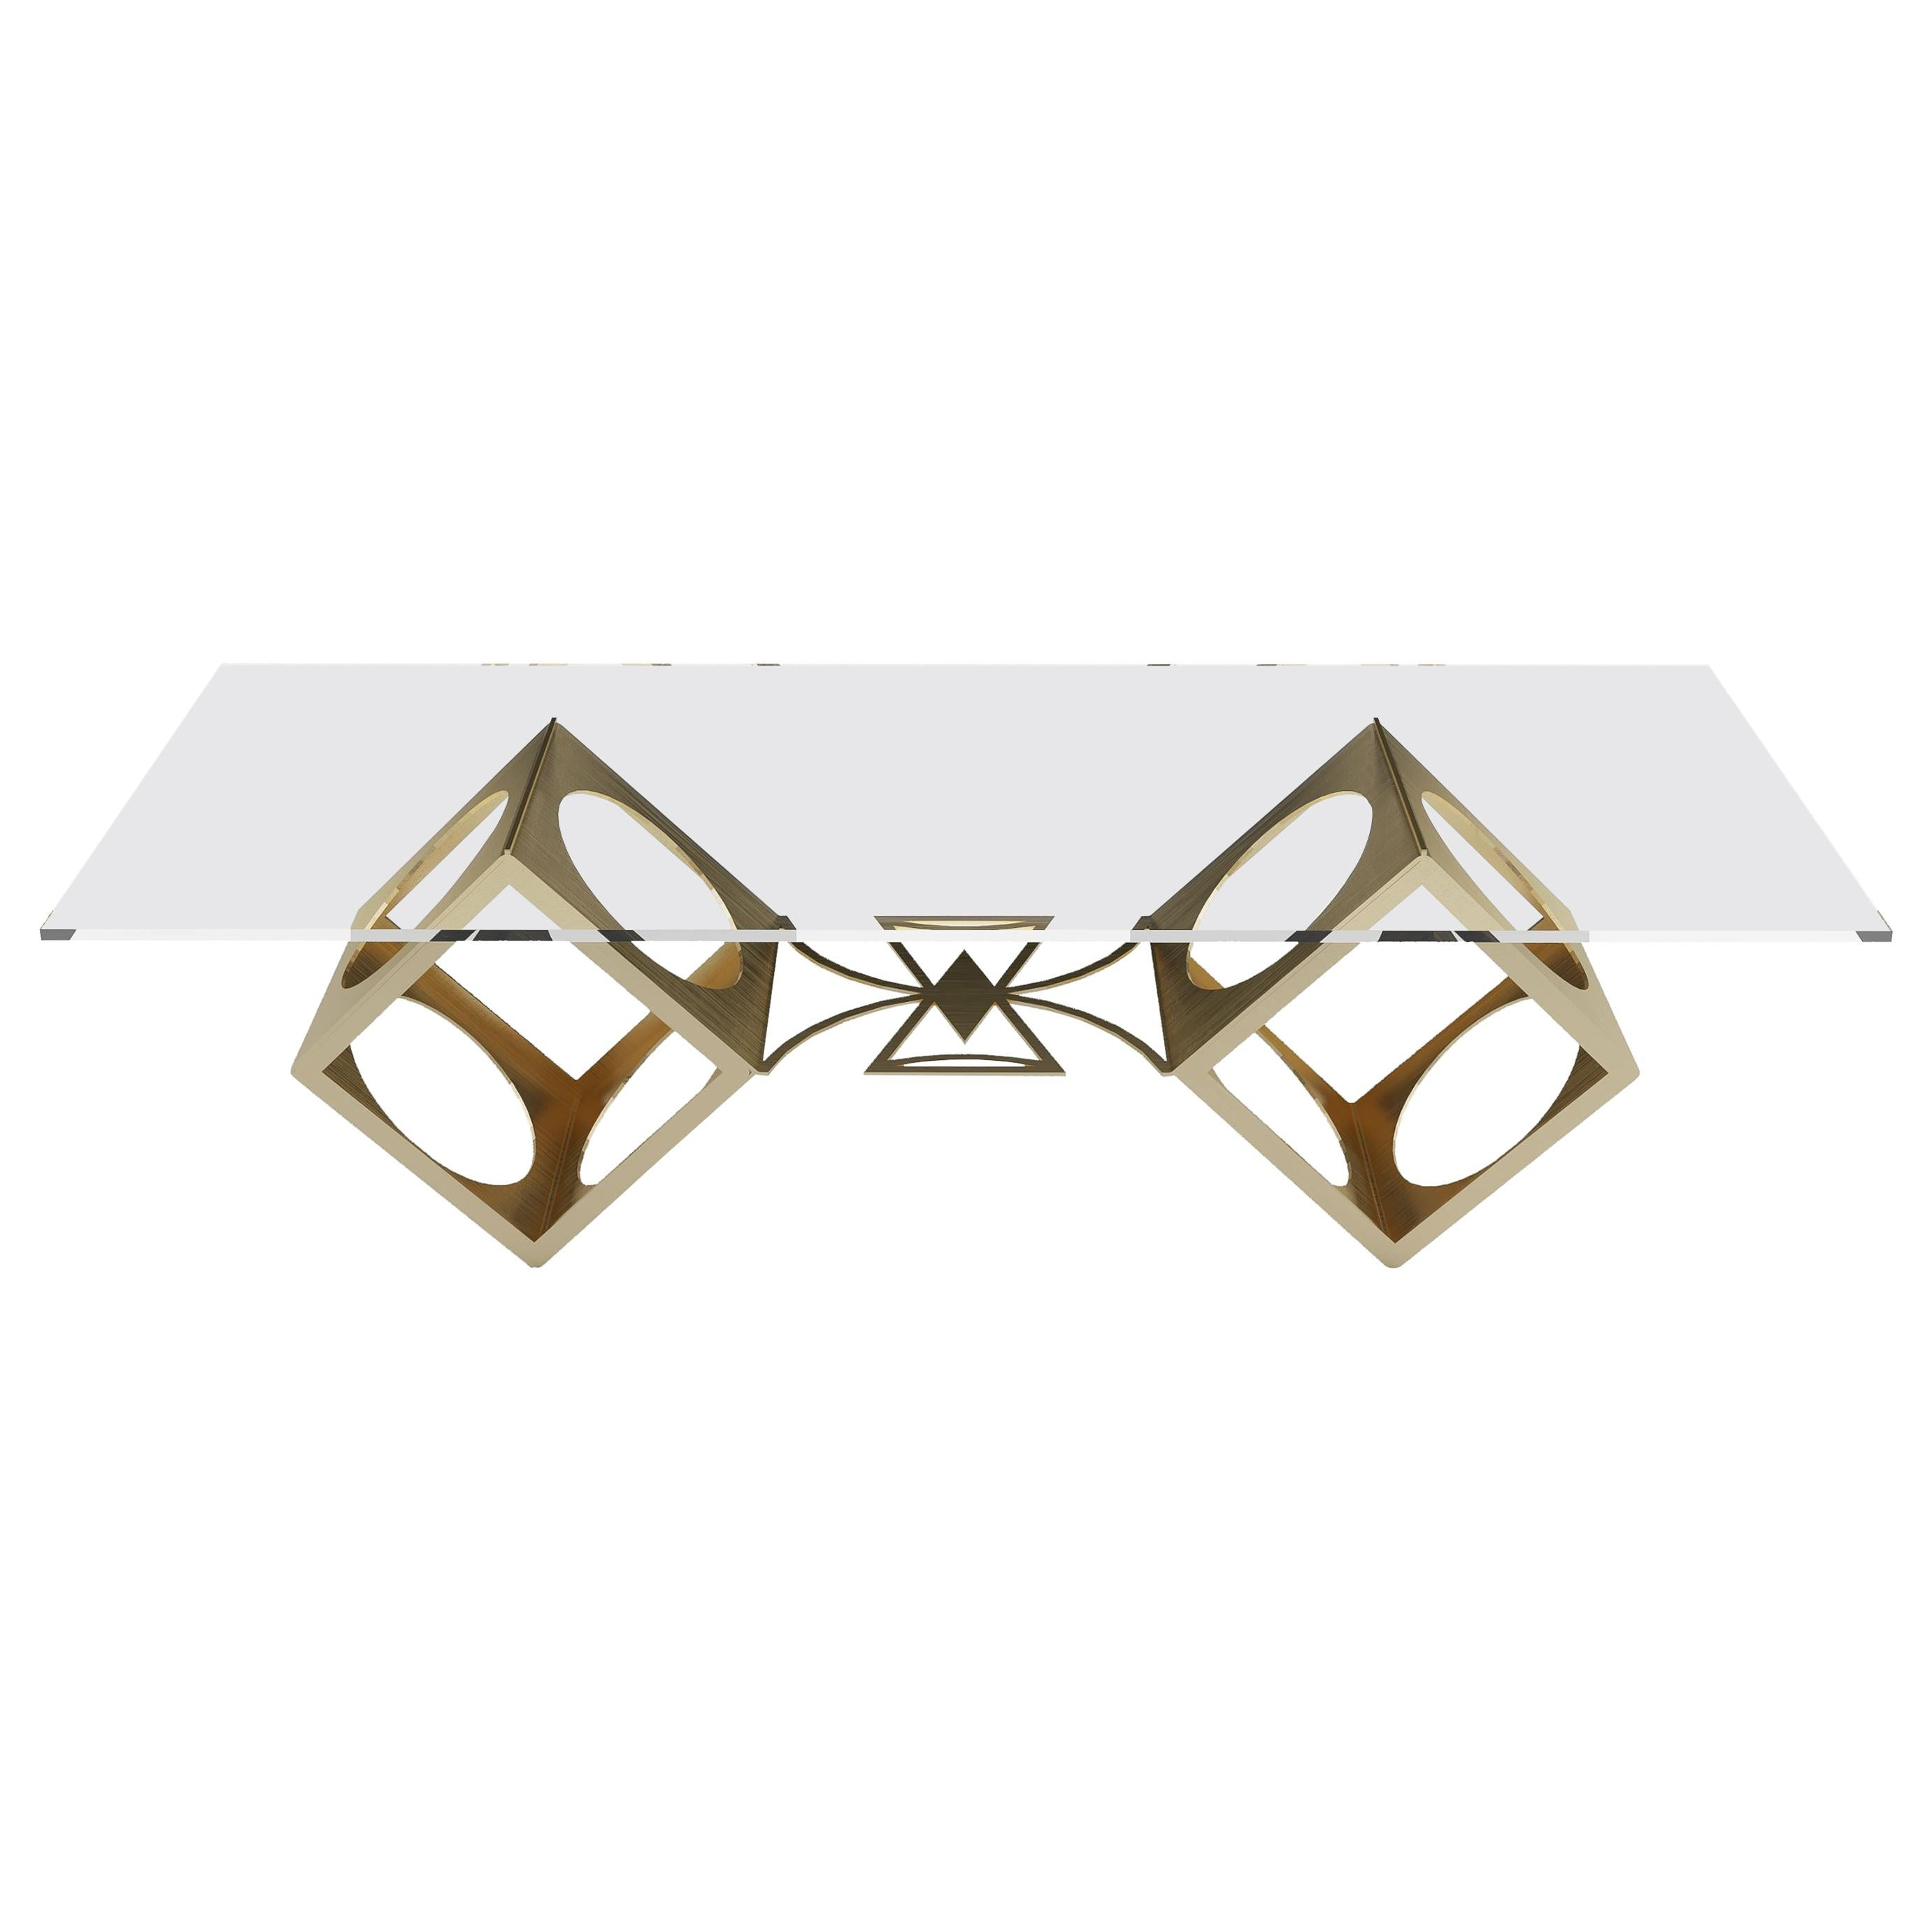 Mighty Table Designed by Laurie Beckerman